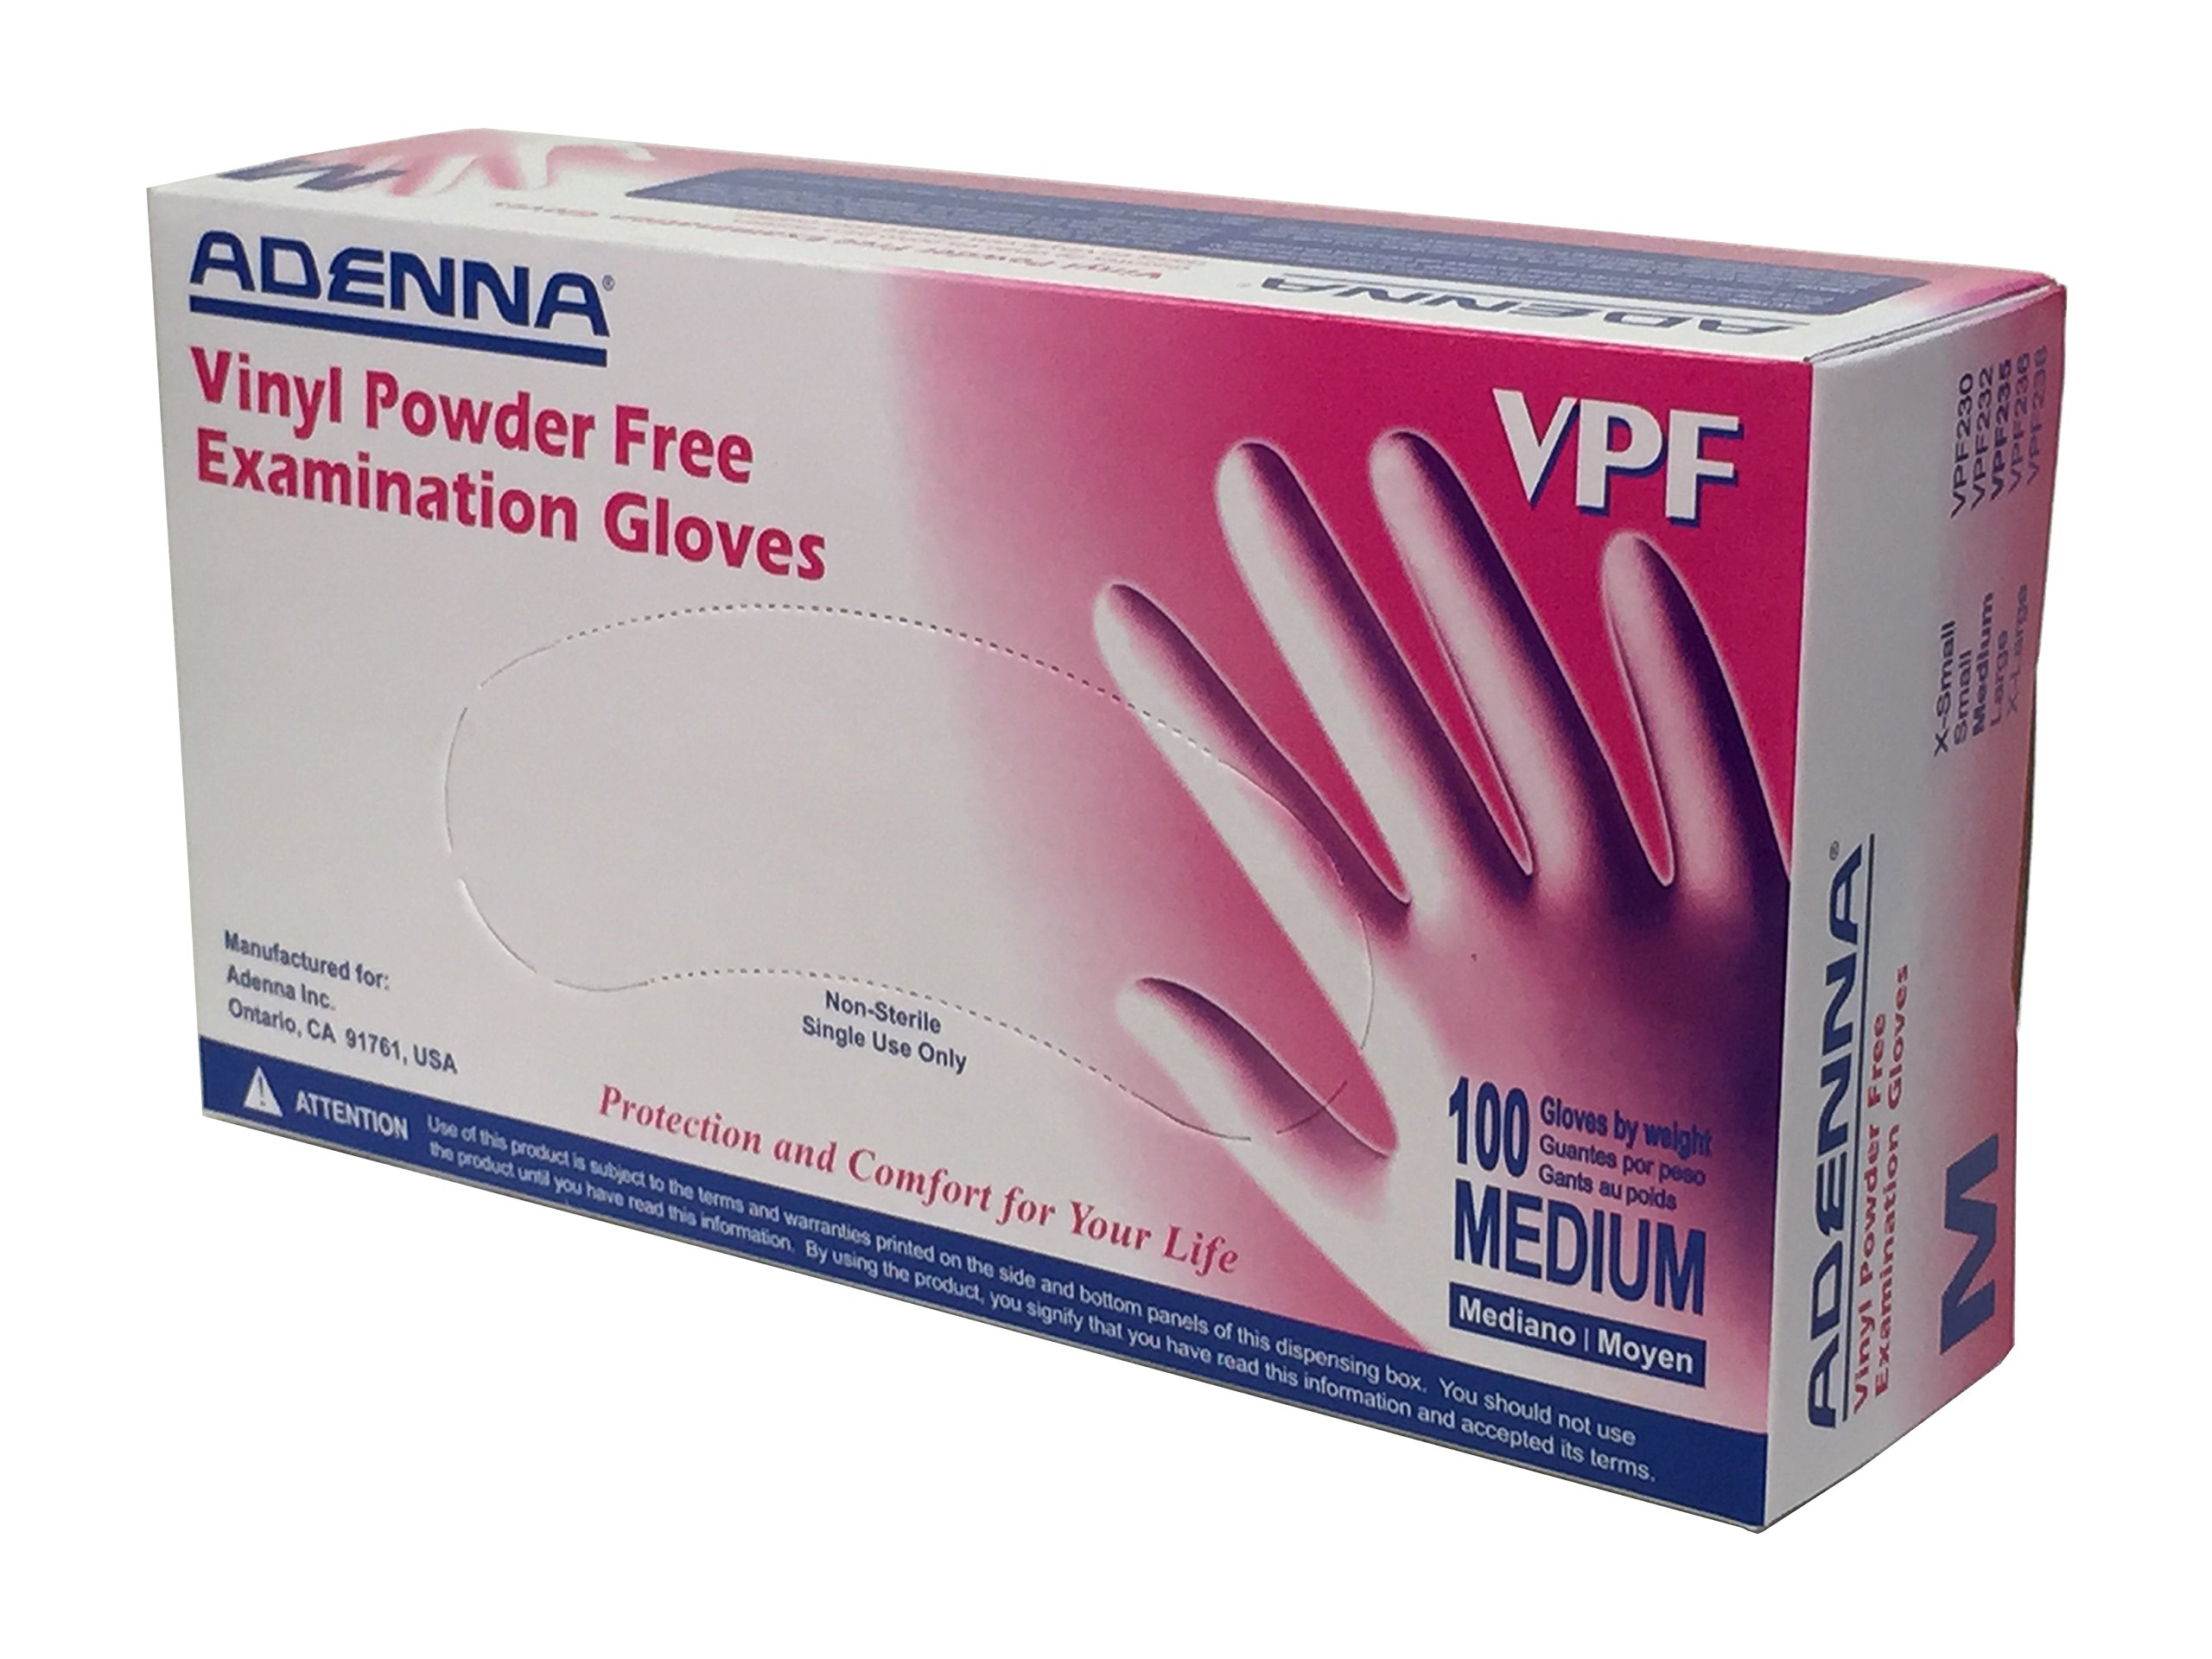 Adenna VPF 3.5 mil Vinyl Powder Free Exam Gloves (Translucent, Medium) Box of 100